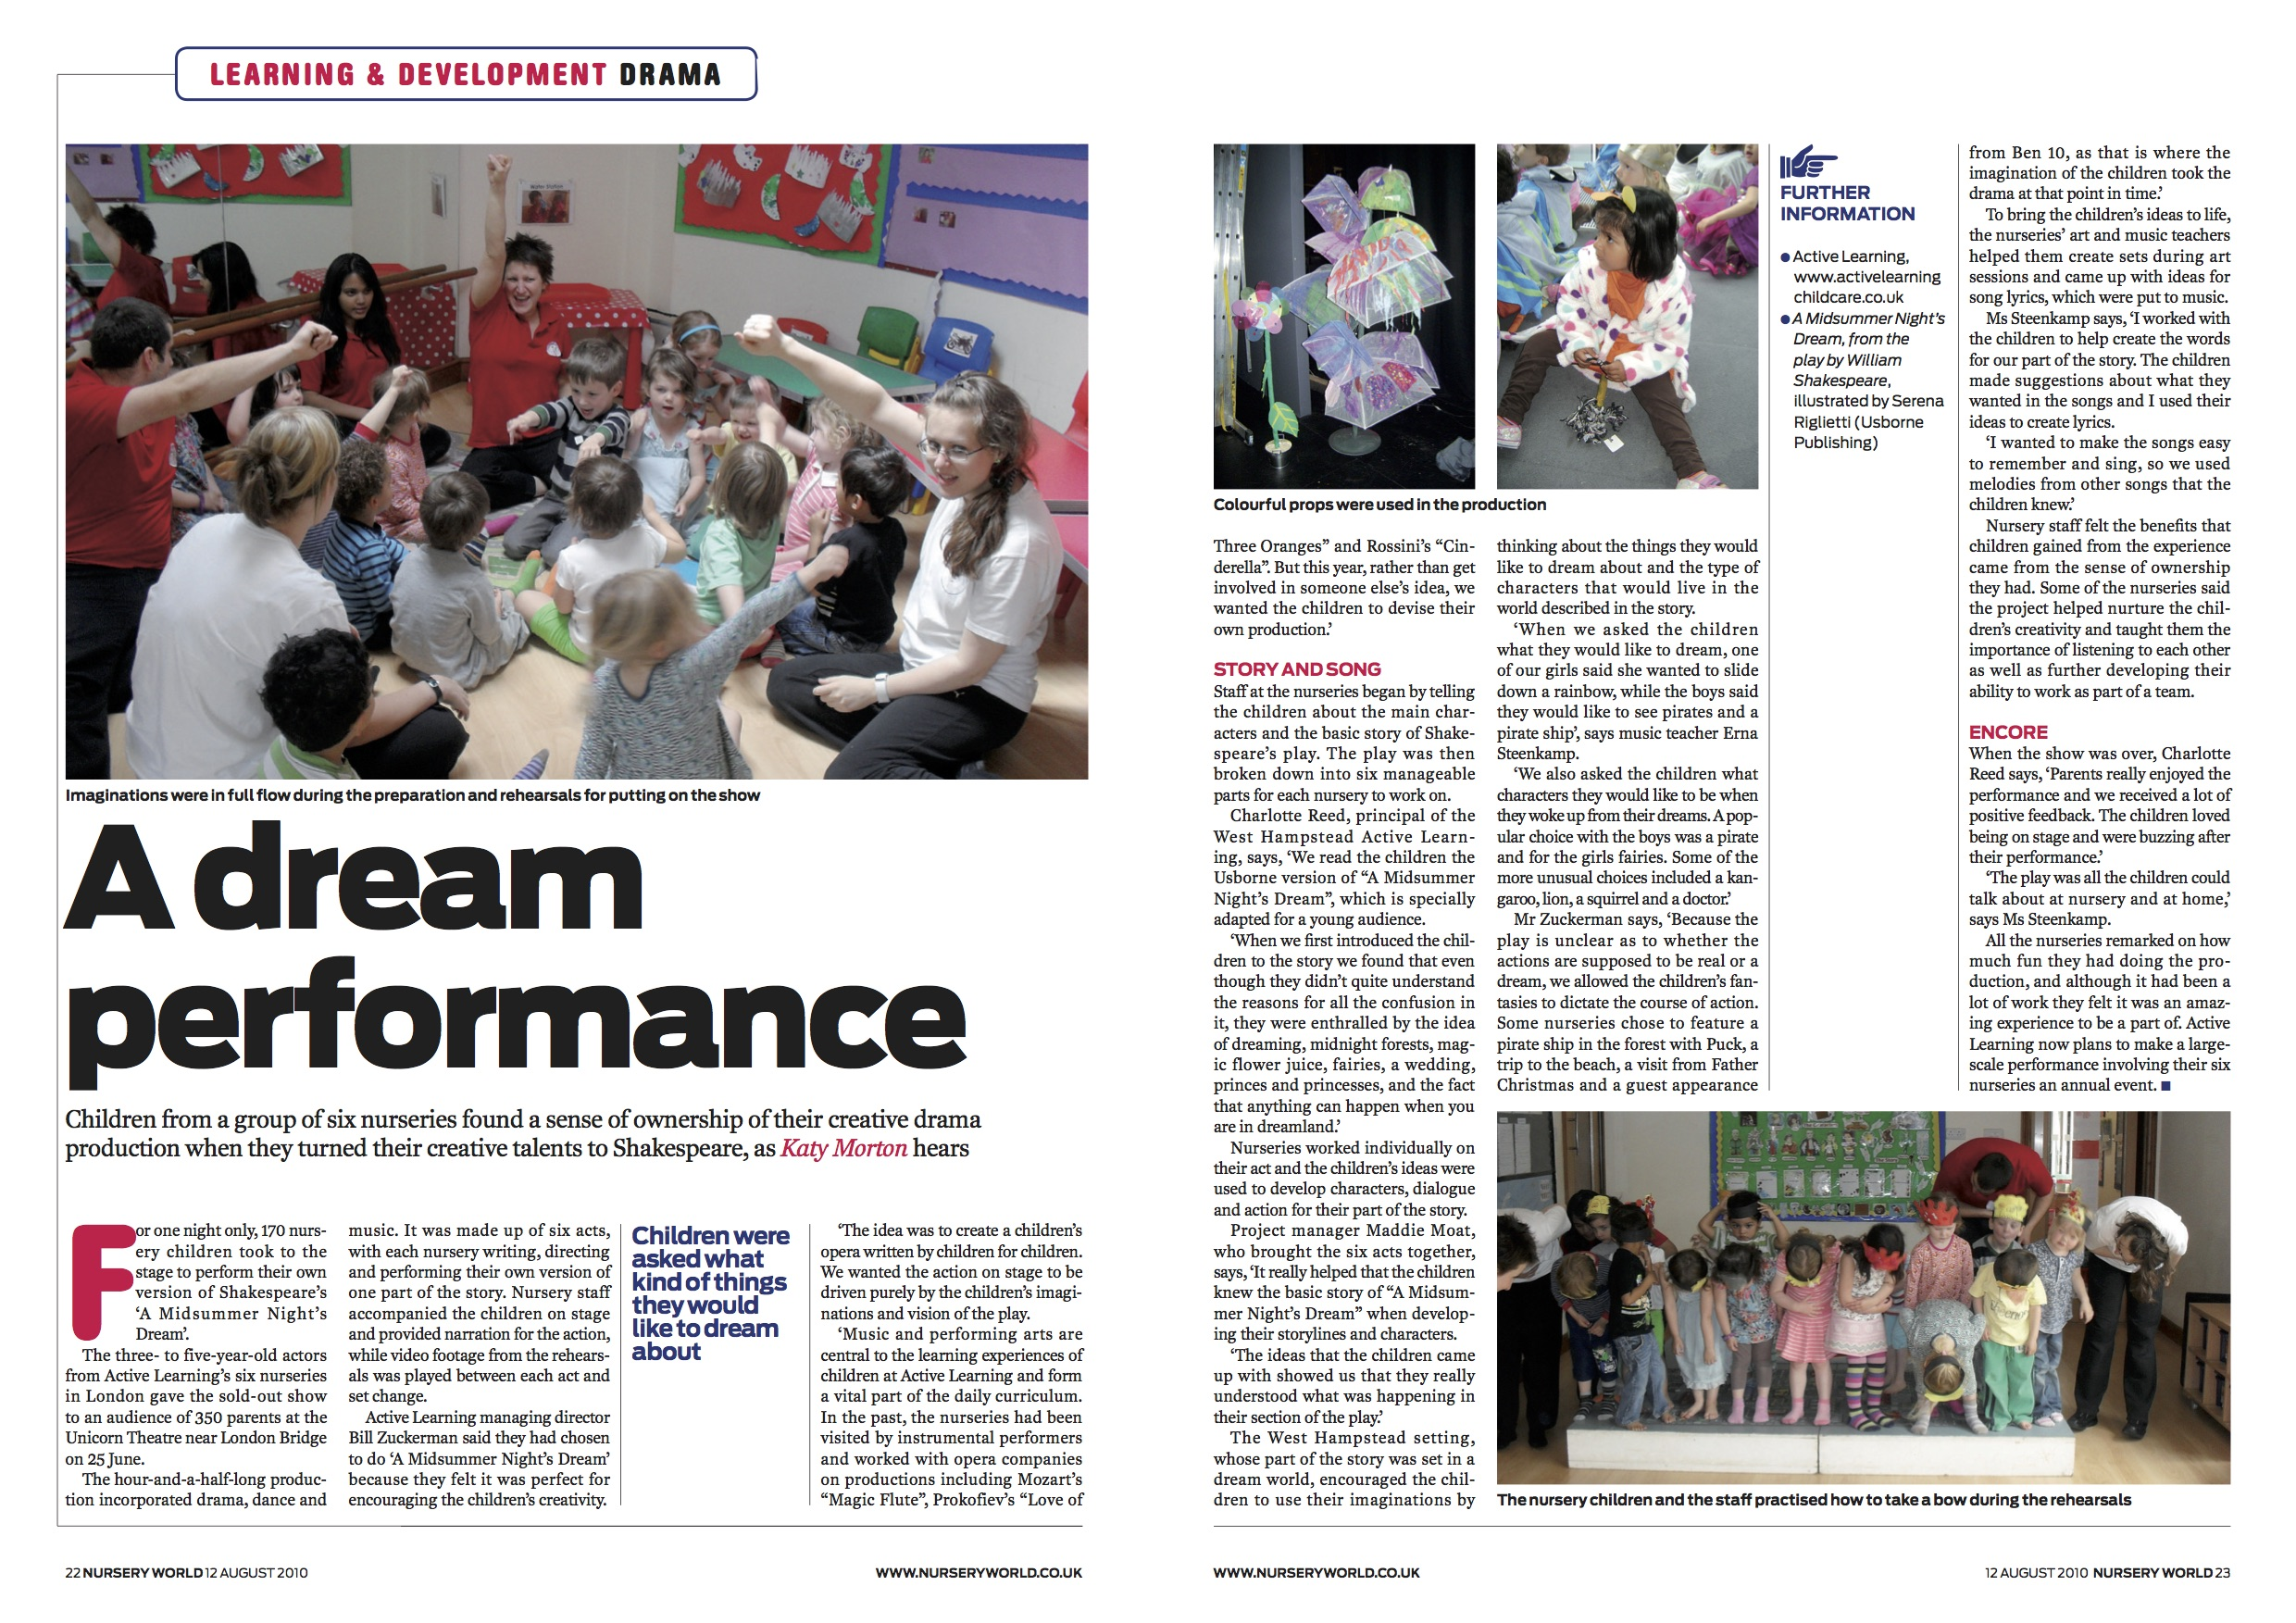 Nursery World MSND article August 2010